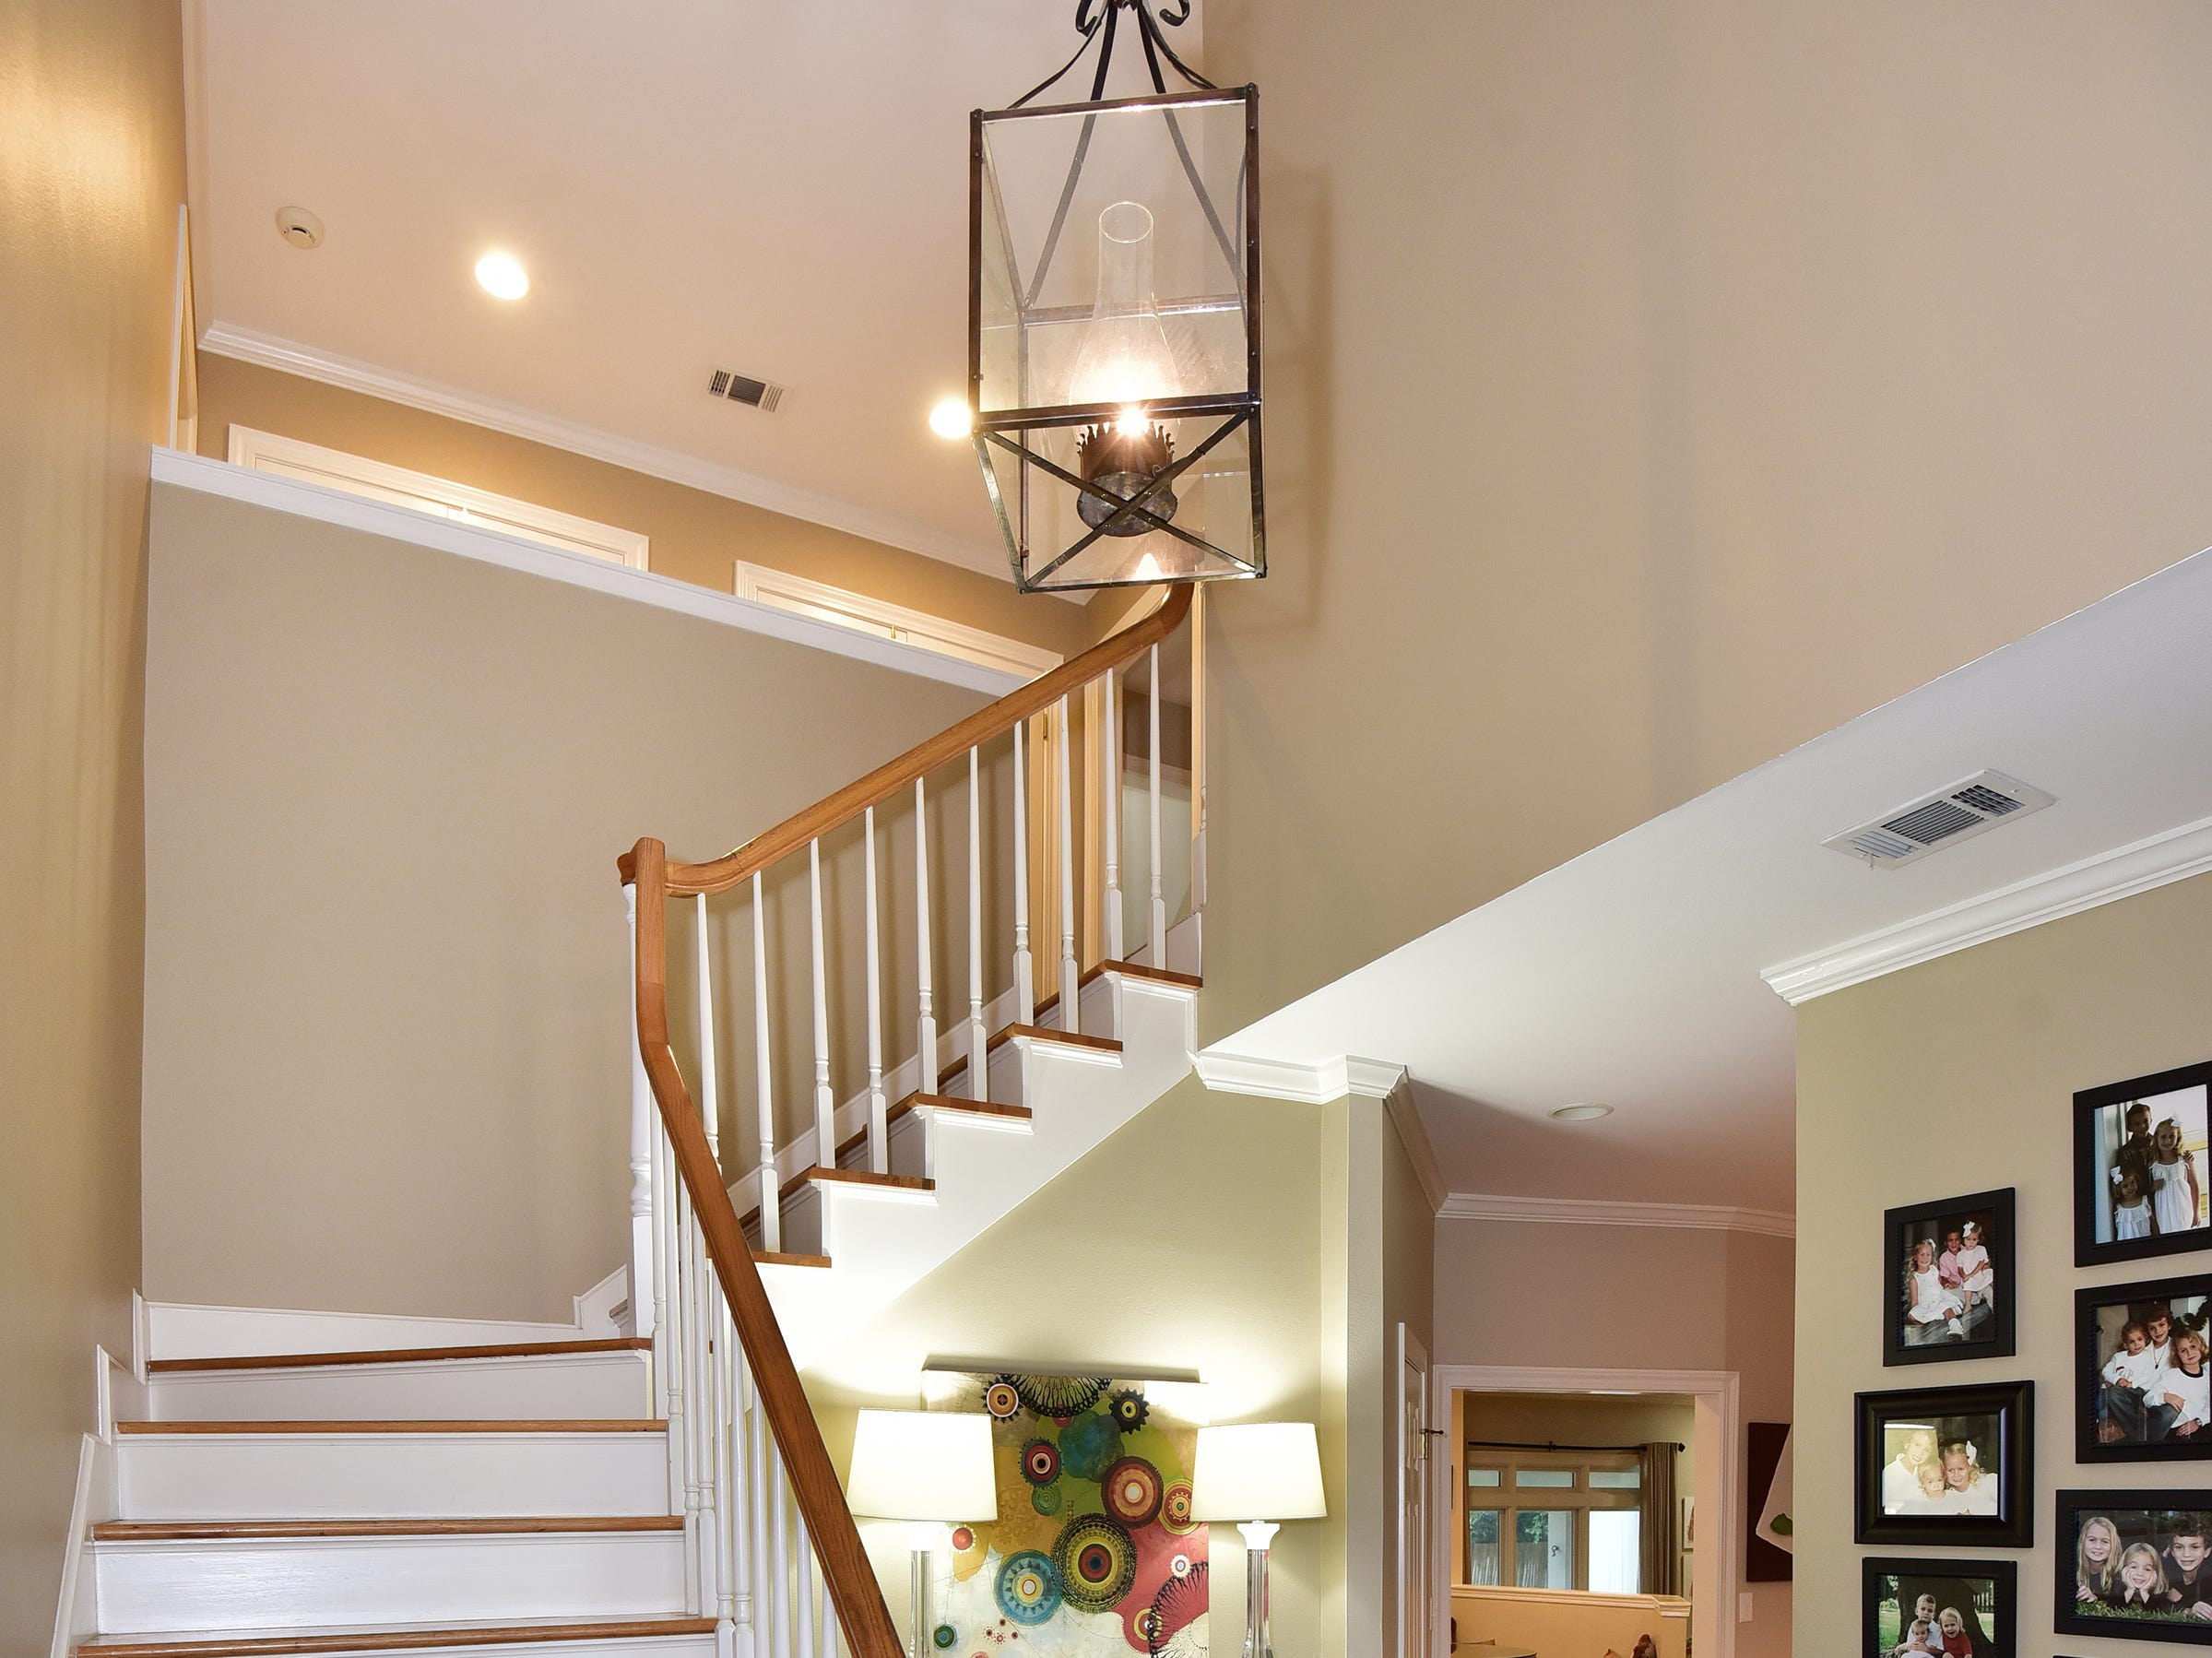 2474 Semur Rd., the foyer flows into the home and offers stairs to the second story.